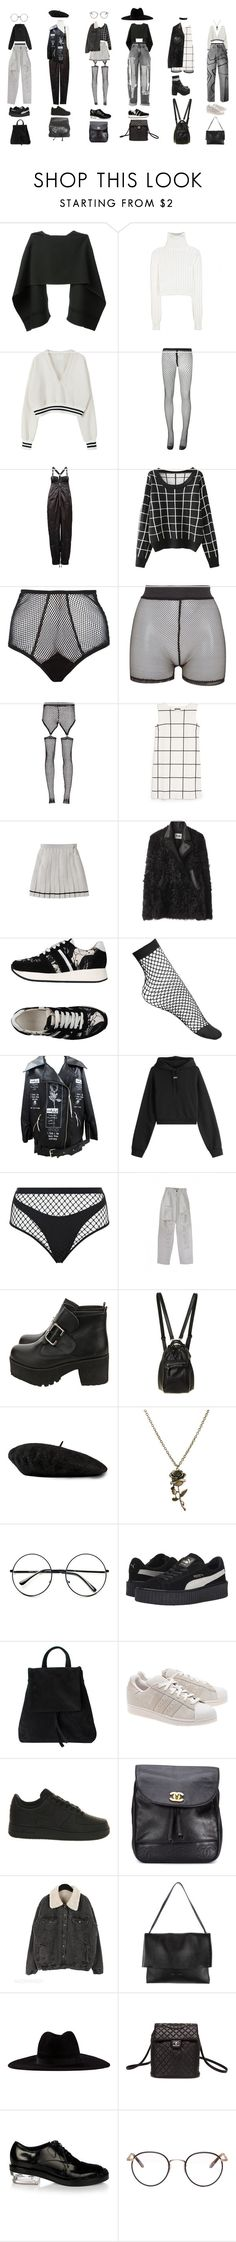 """""""Untitled #1107"""" by jayda-xx ❤ liked on Polyvore featuring BEVZA, Calvin Klein Collection, Comme des Garçons, Chicnova Fashion, Fleur du Mal, Bitching & Junkfood, Bohemian Society, MANGO, Acne Studios and Carven"""